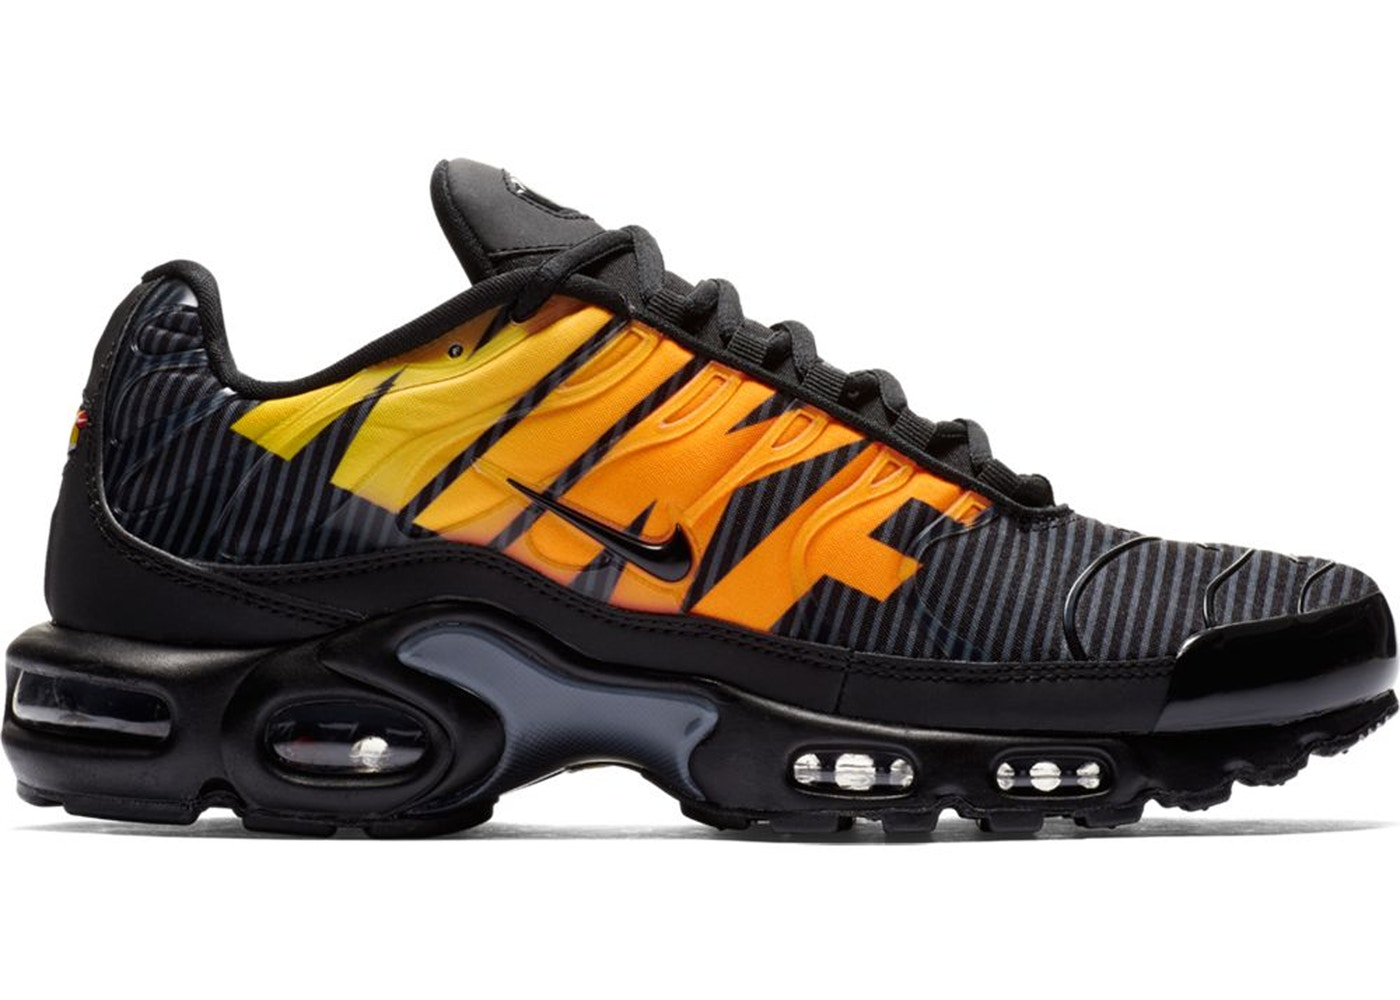 ナイキ NIKE エア マックス 黒 ブラック スニーカー 【 AIR BLACK MAX PLUS MERCURIAL ORANGE TOTAL ORANGEANTHRACITETOUR YELLOW 】 メンズ